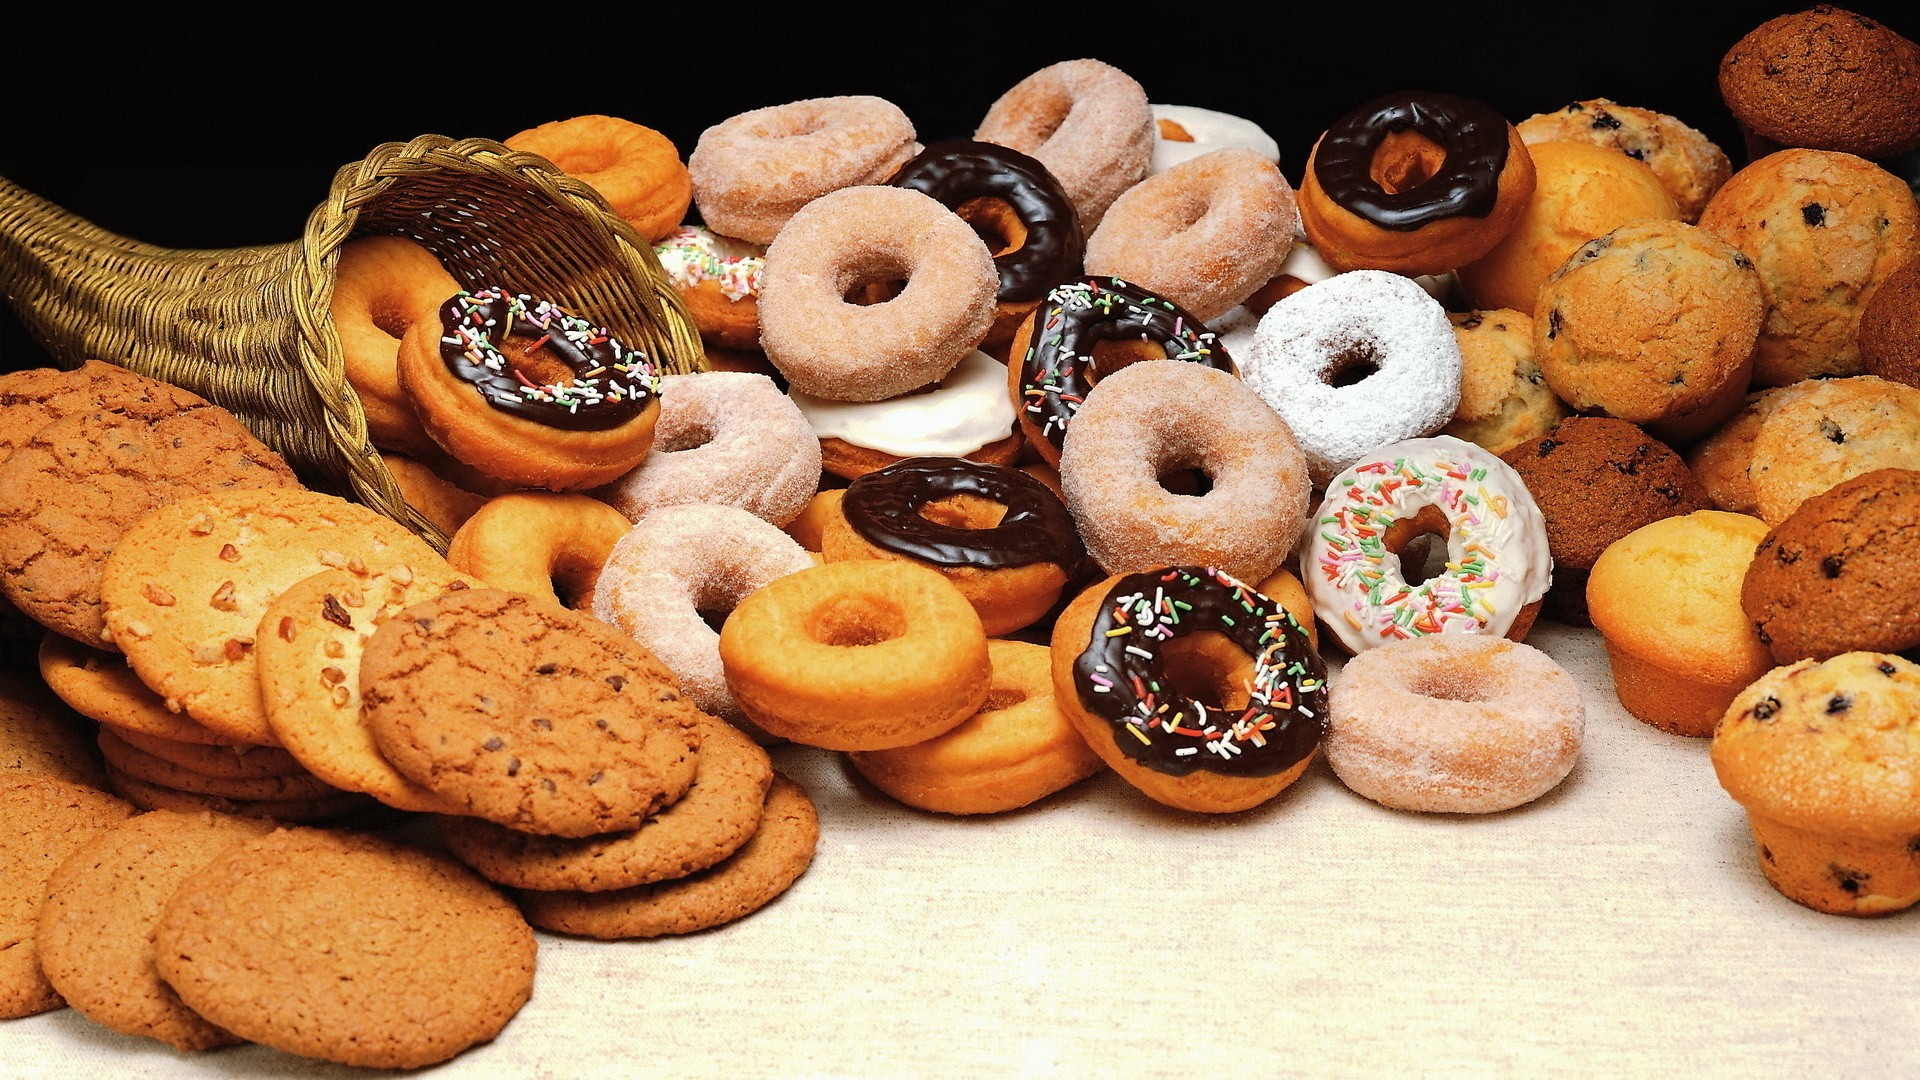 Mountain donuts, pastries and muffins